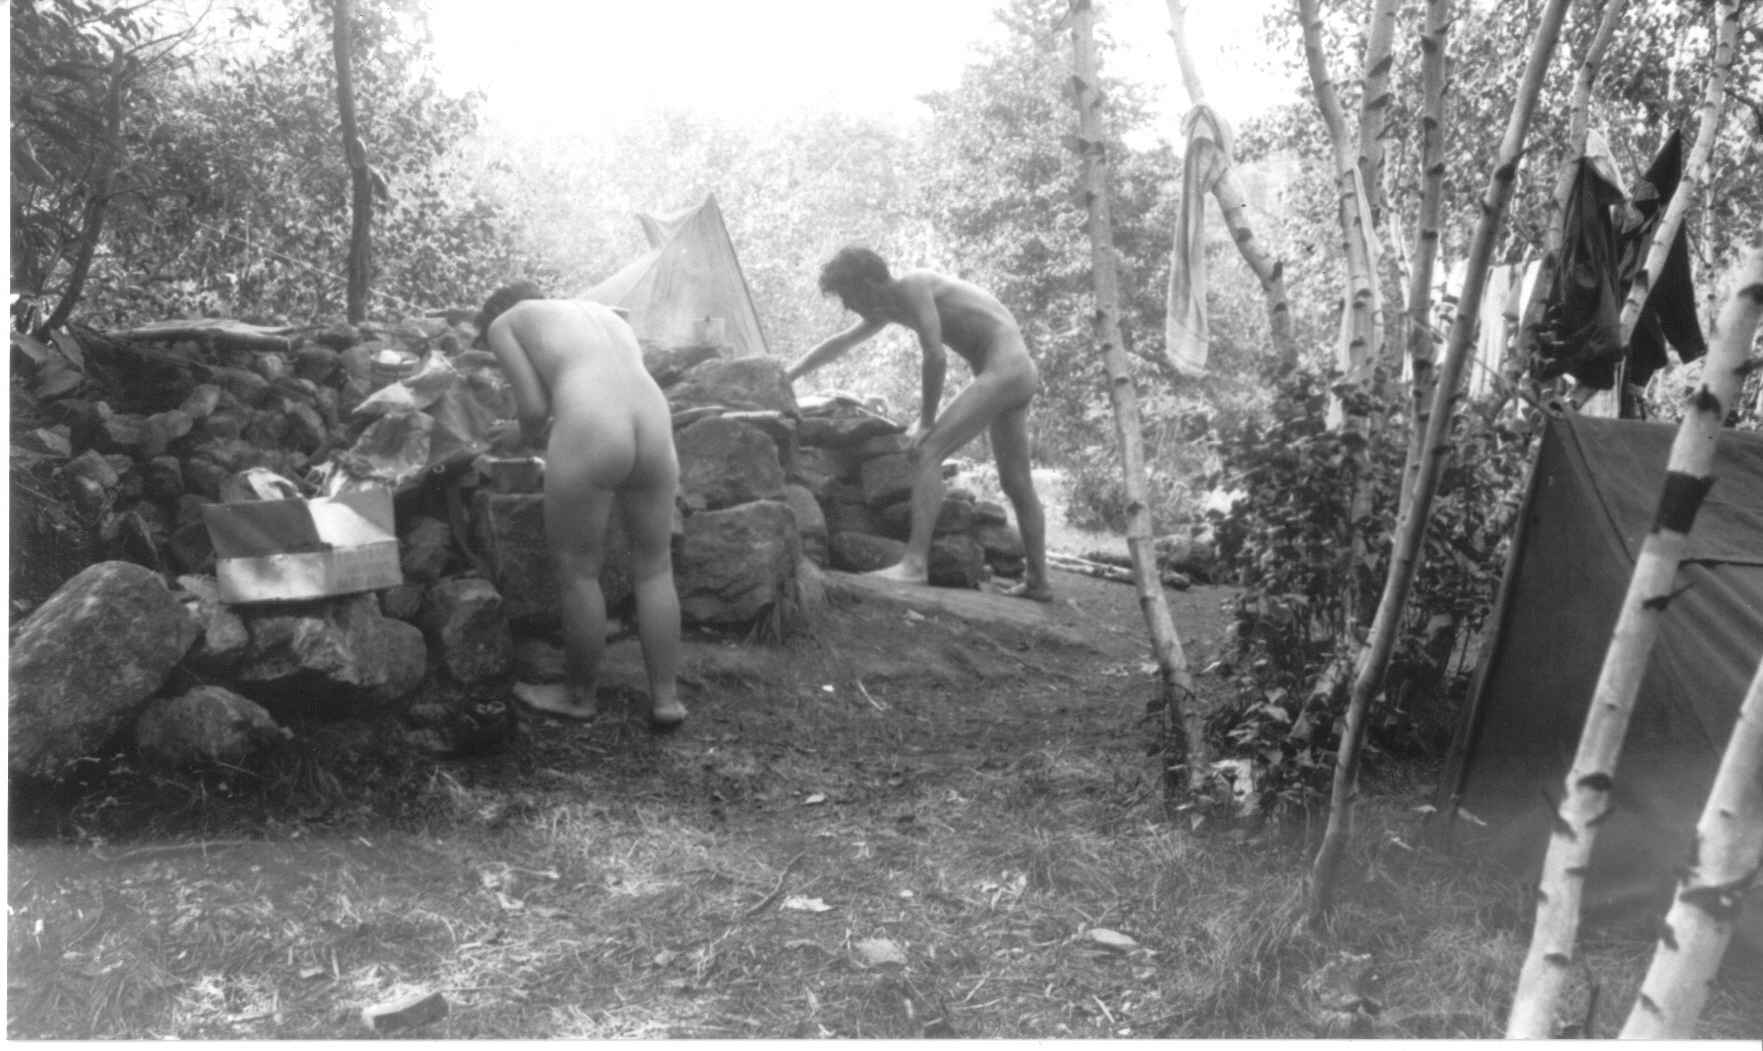 The farm nudist camp